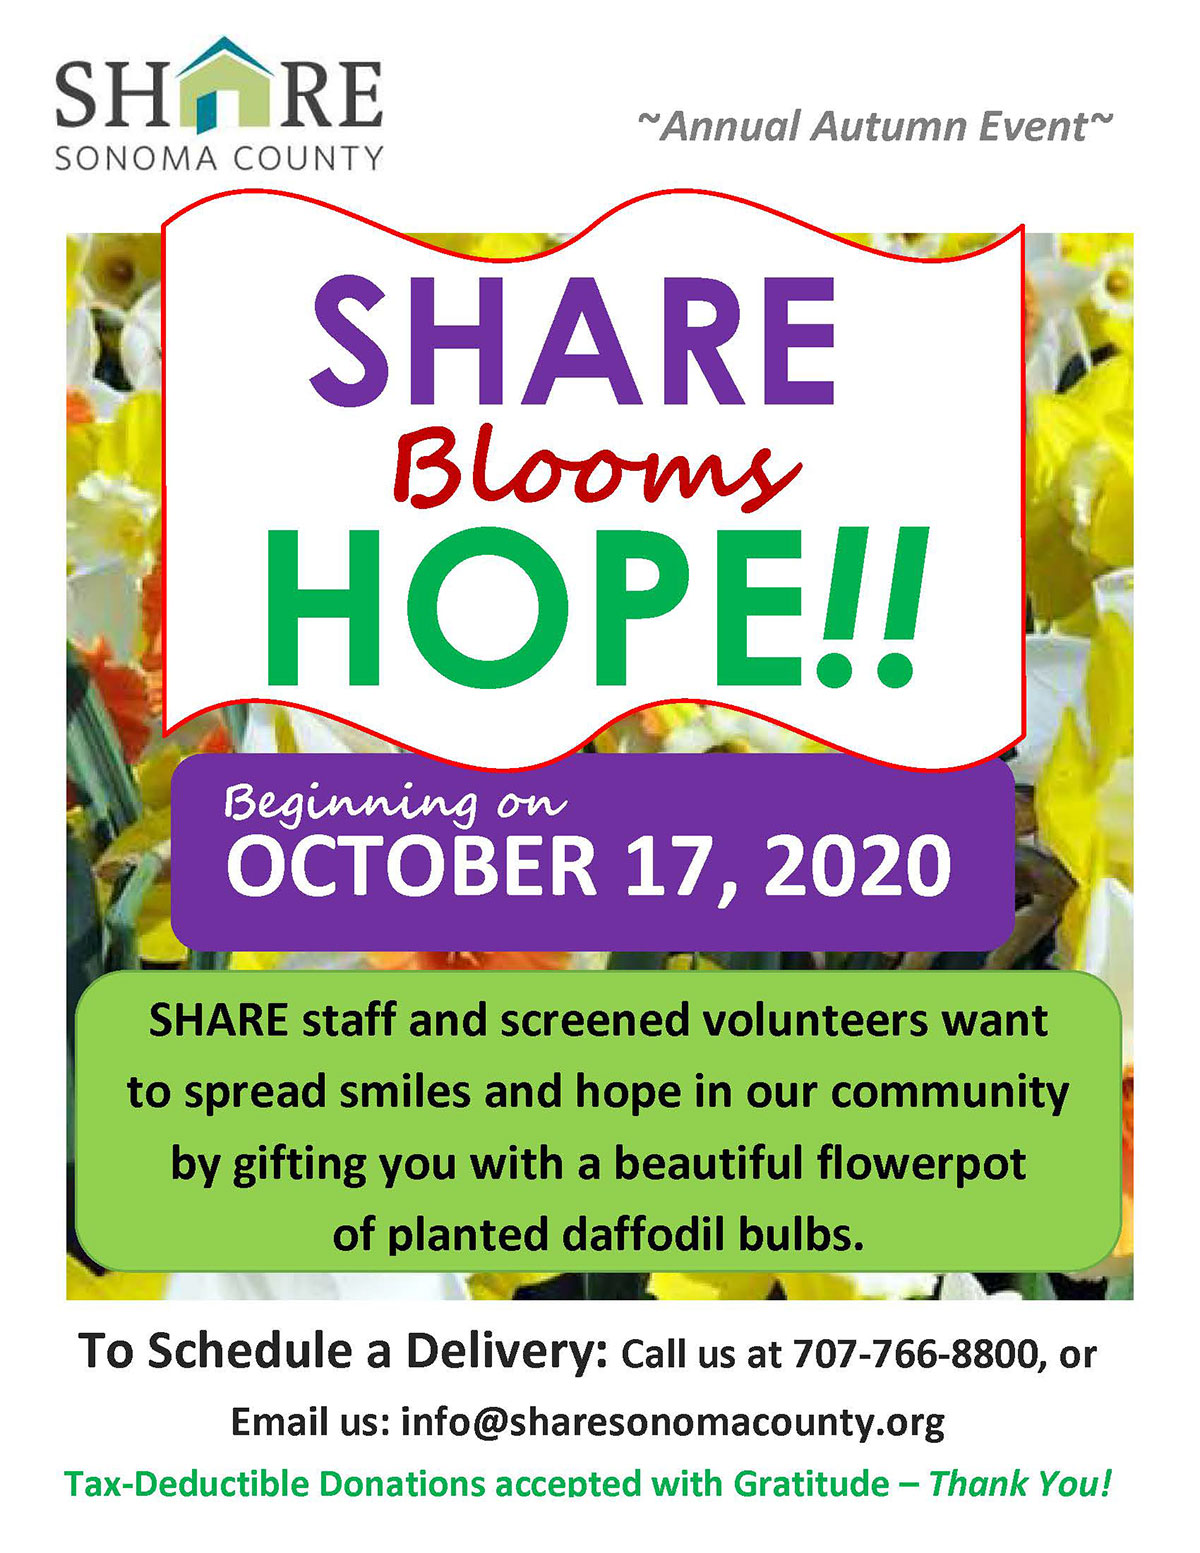 Share Blooms